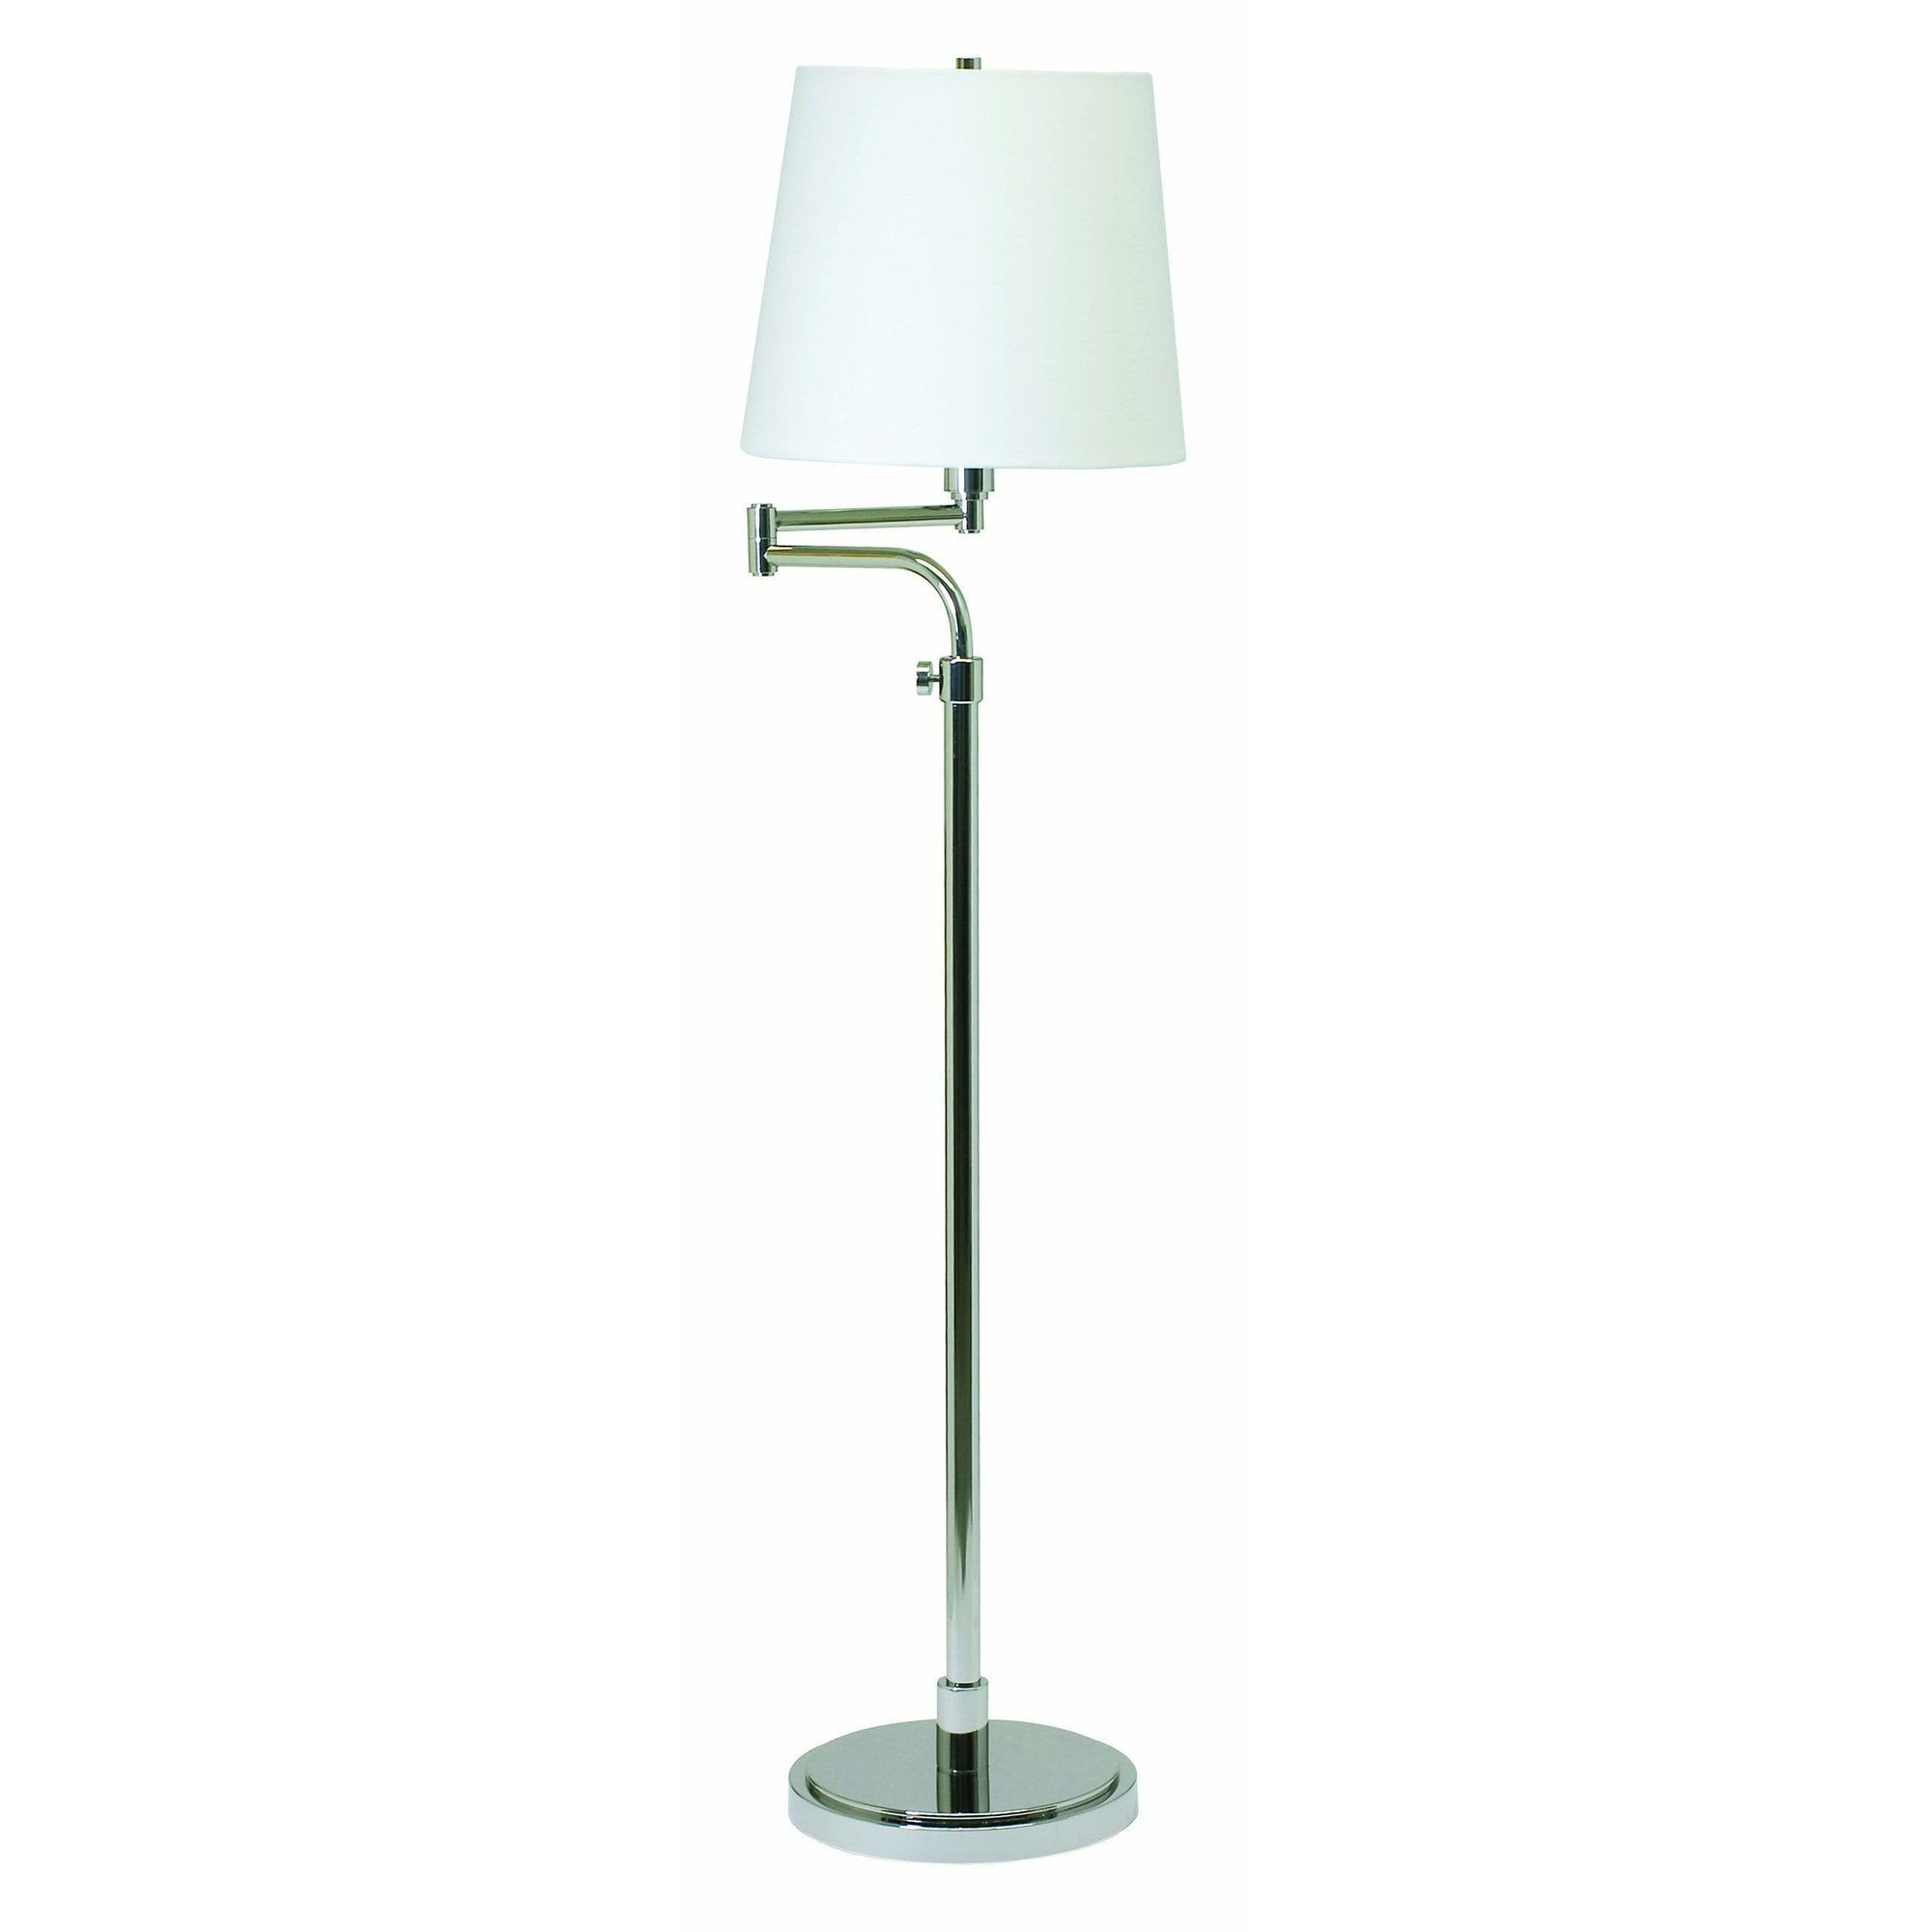 House Of Troy Floor Lamps Townhouse Adjustable Swing Arm Floor Lamp by House Of Troy TH700-PN